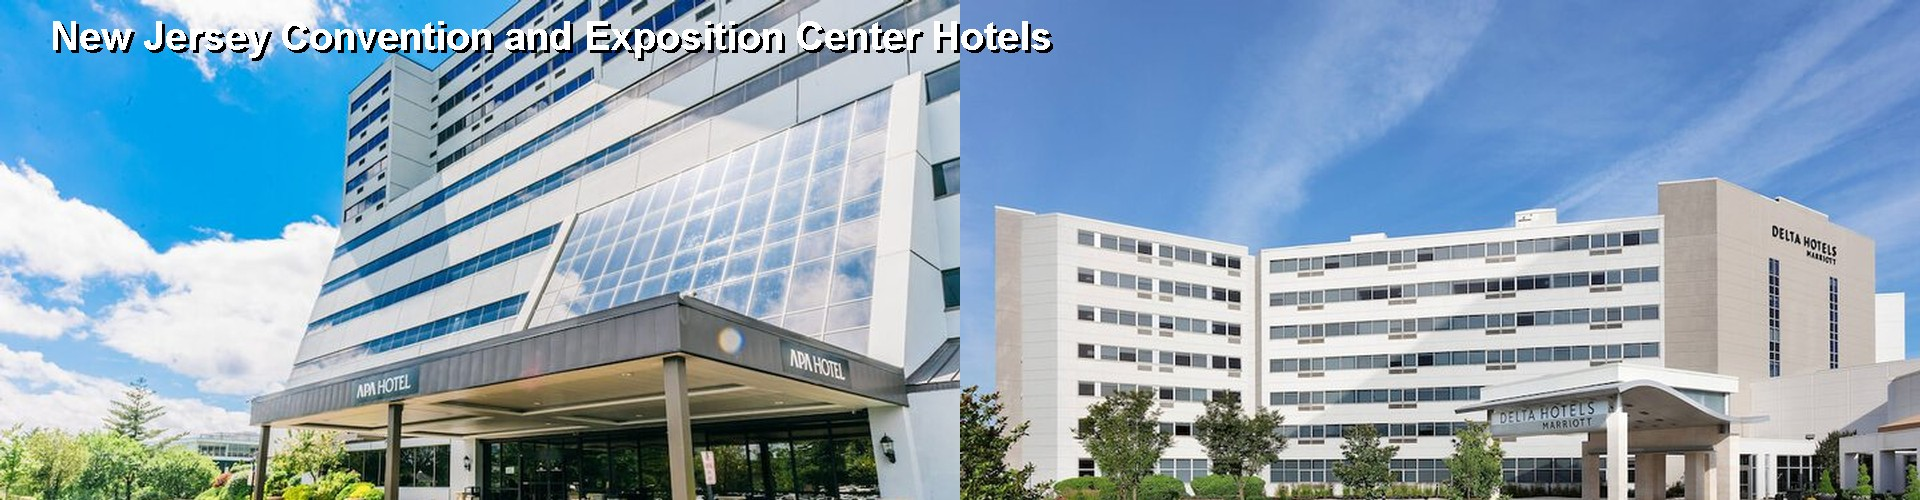 5 Best Hotels near New Jersey Convention and Exposition Center